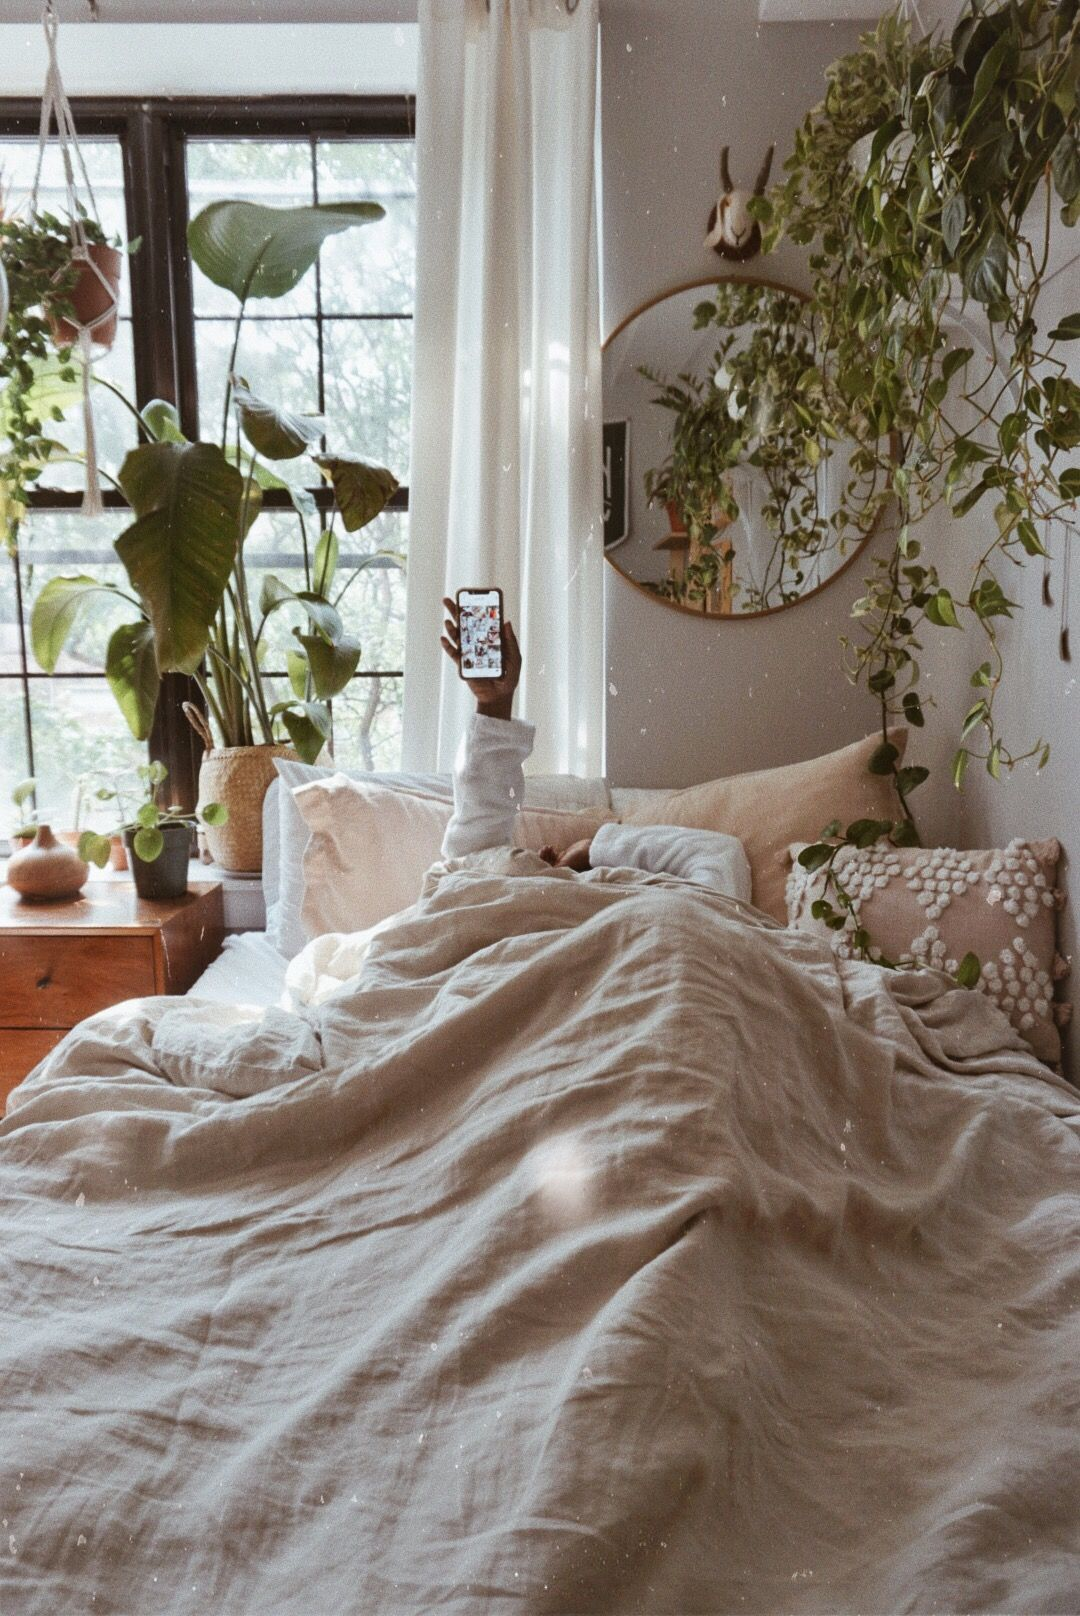 Boho Bedroom Decor Bedroom Design Aesthetic Bedroom Apartment Room